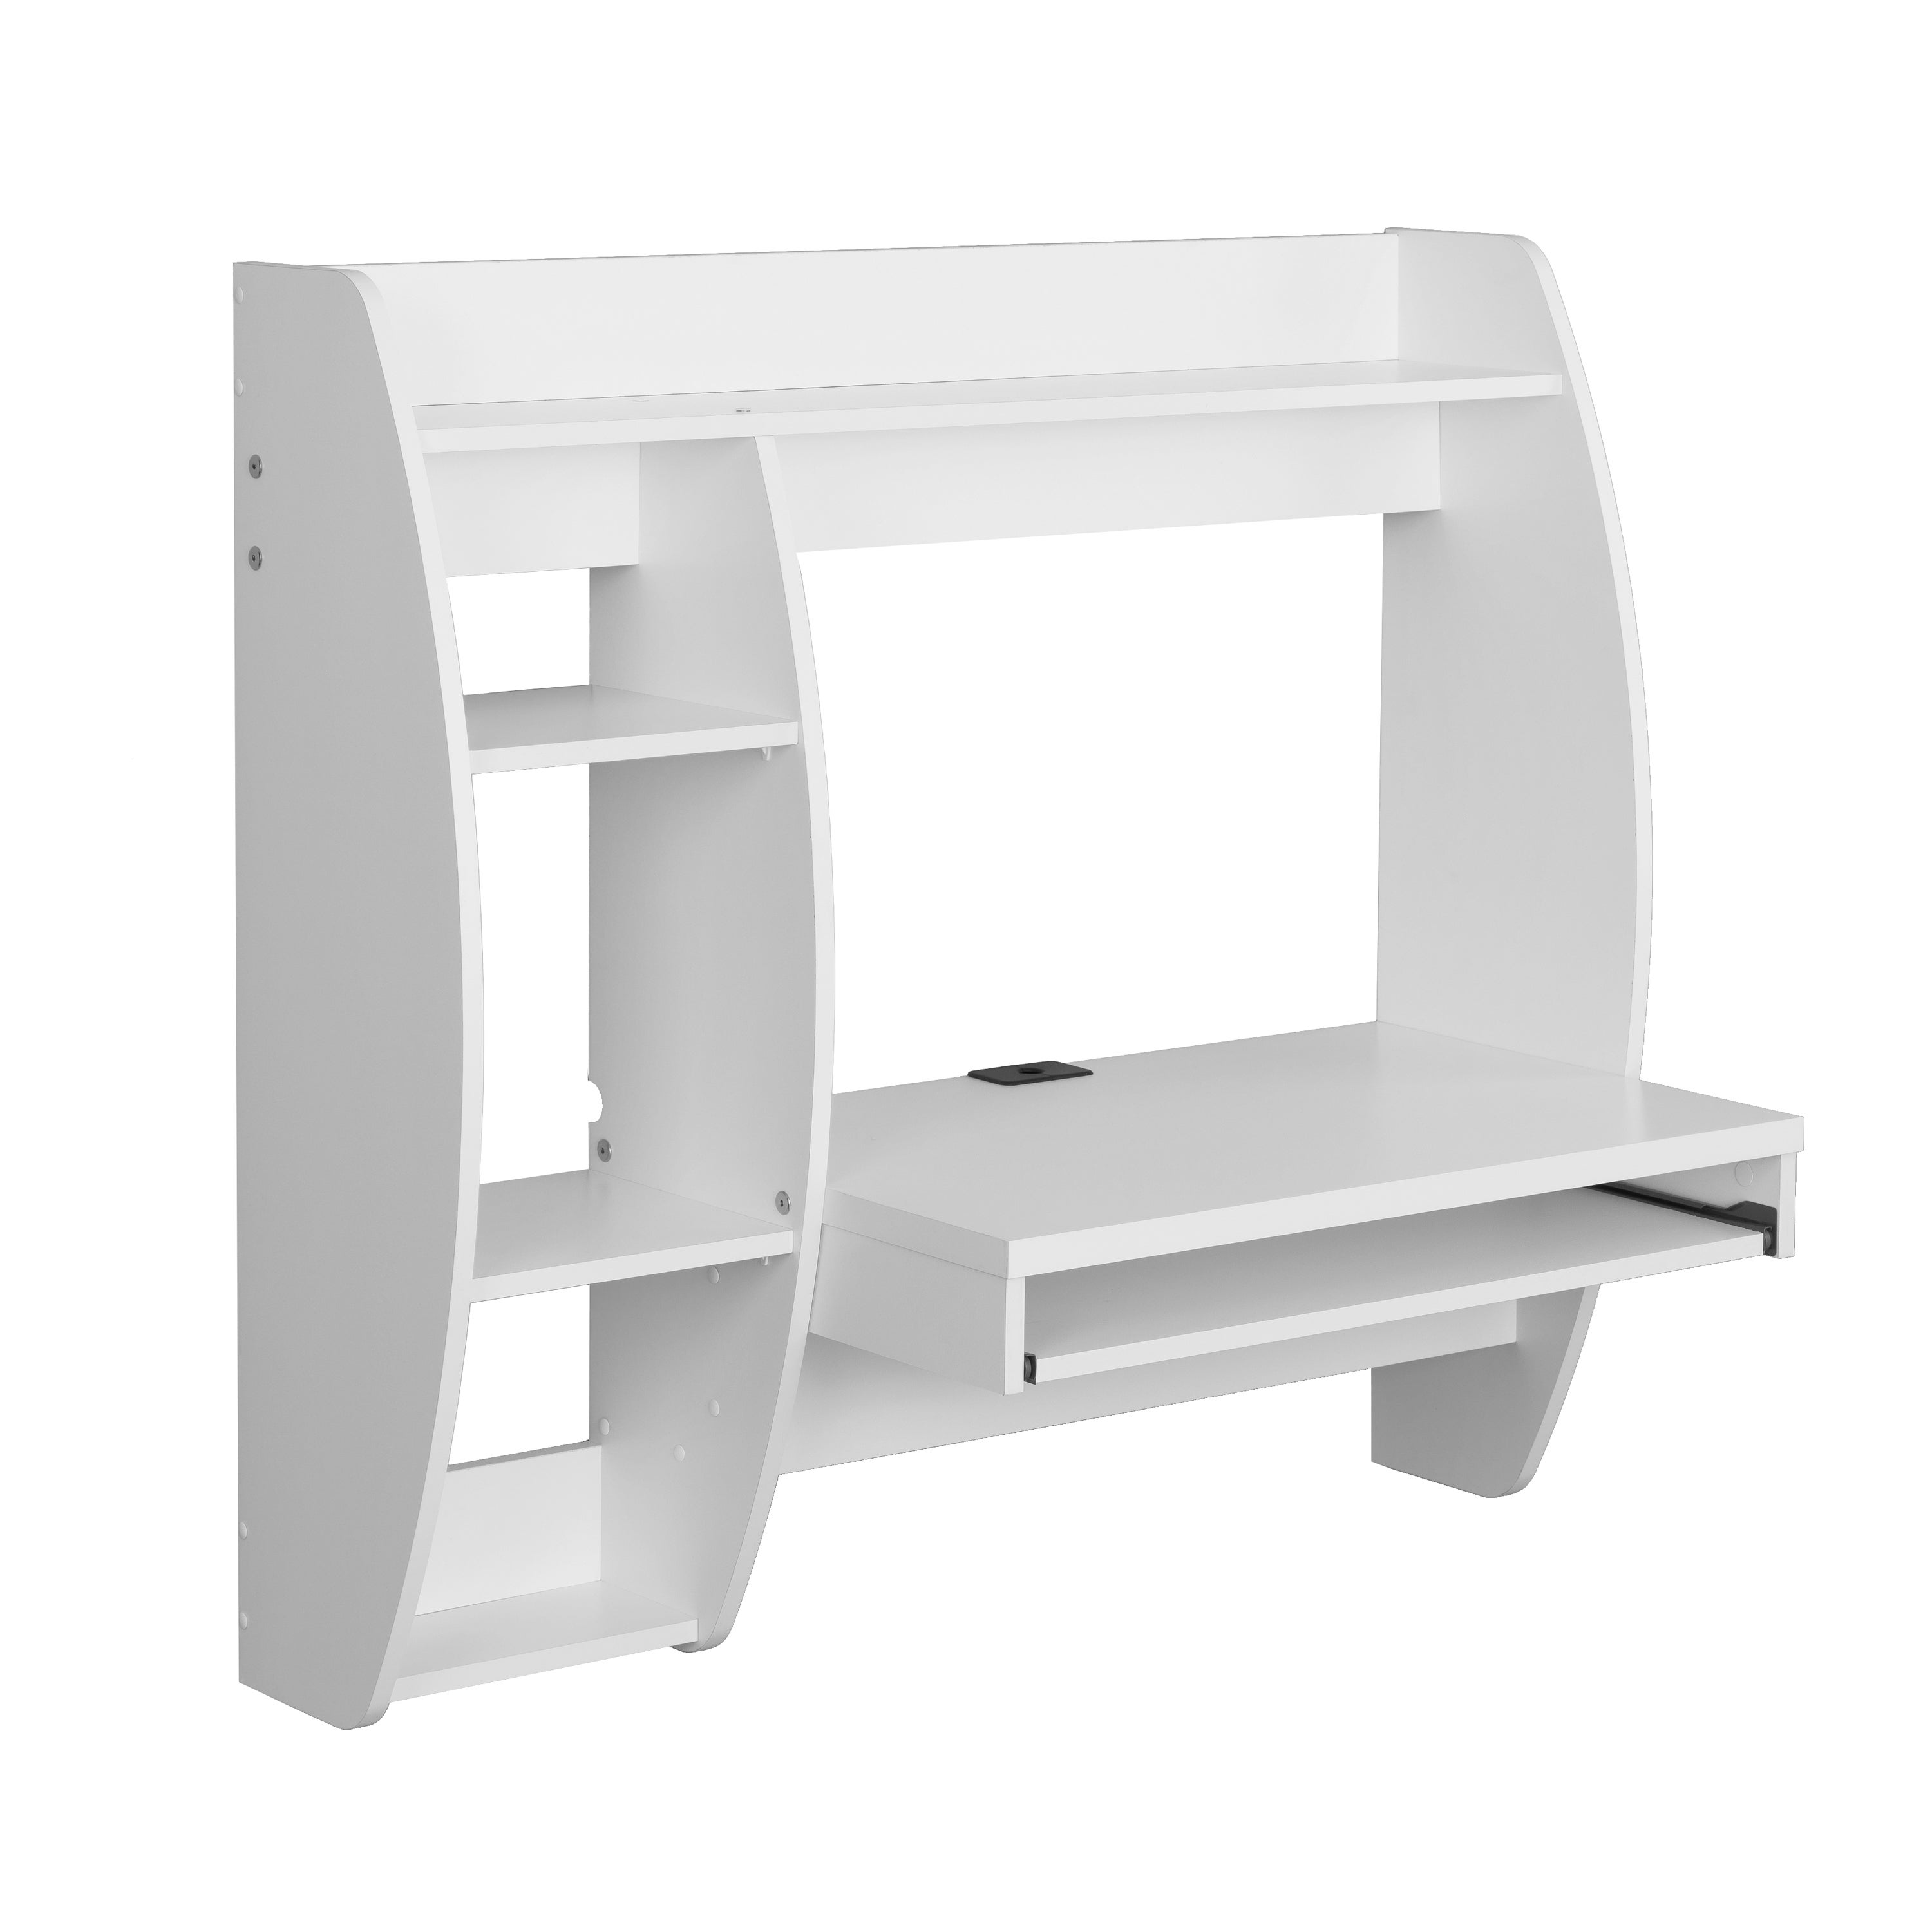 Prepac White Floating Desk With Storage And Keyboard Tray Free Shipping Today 10858588